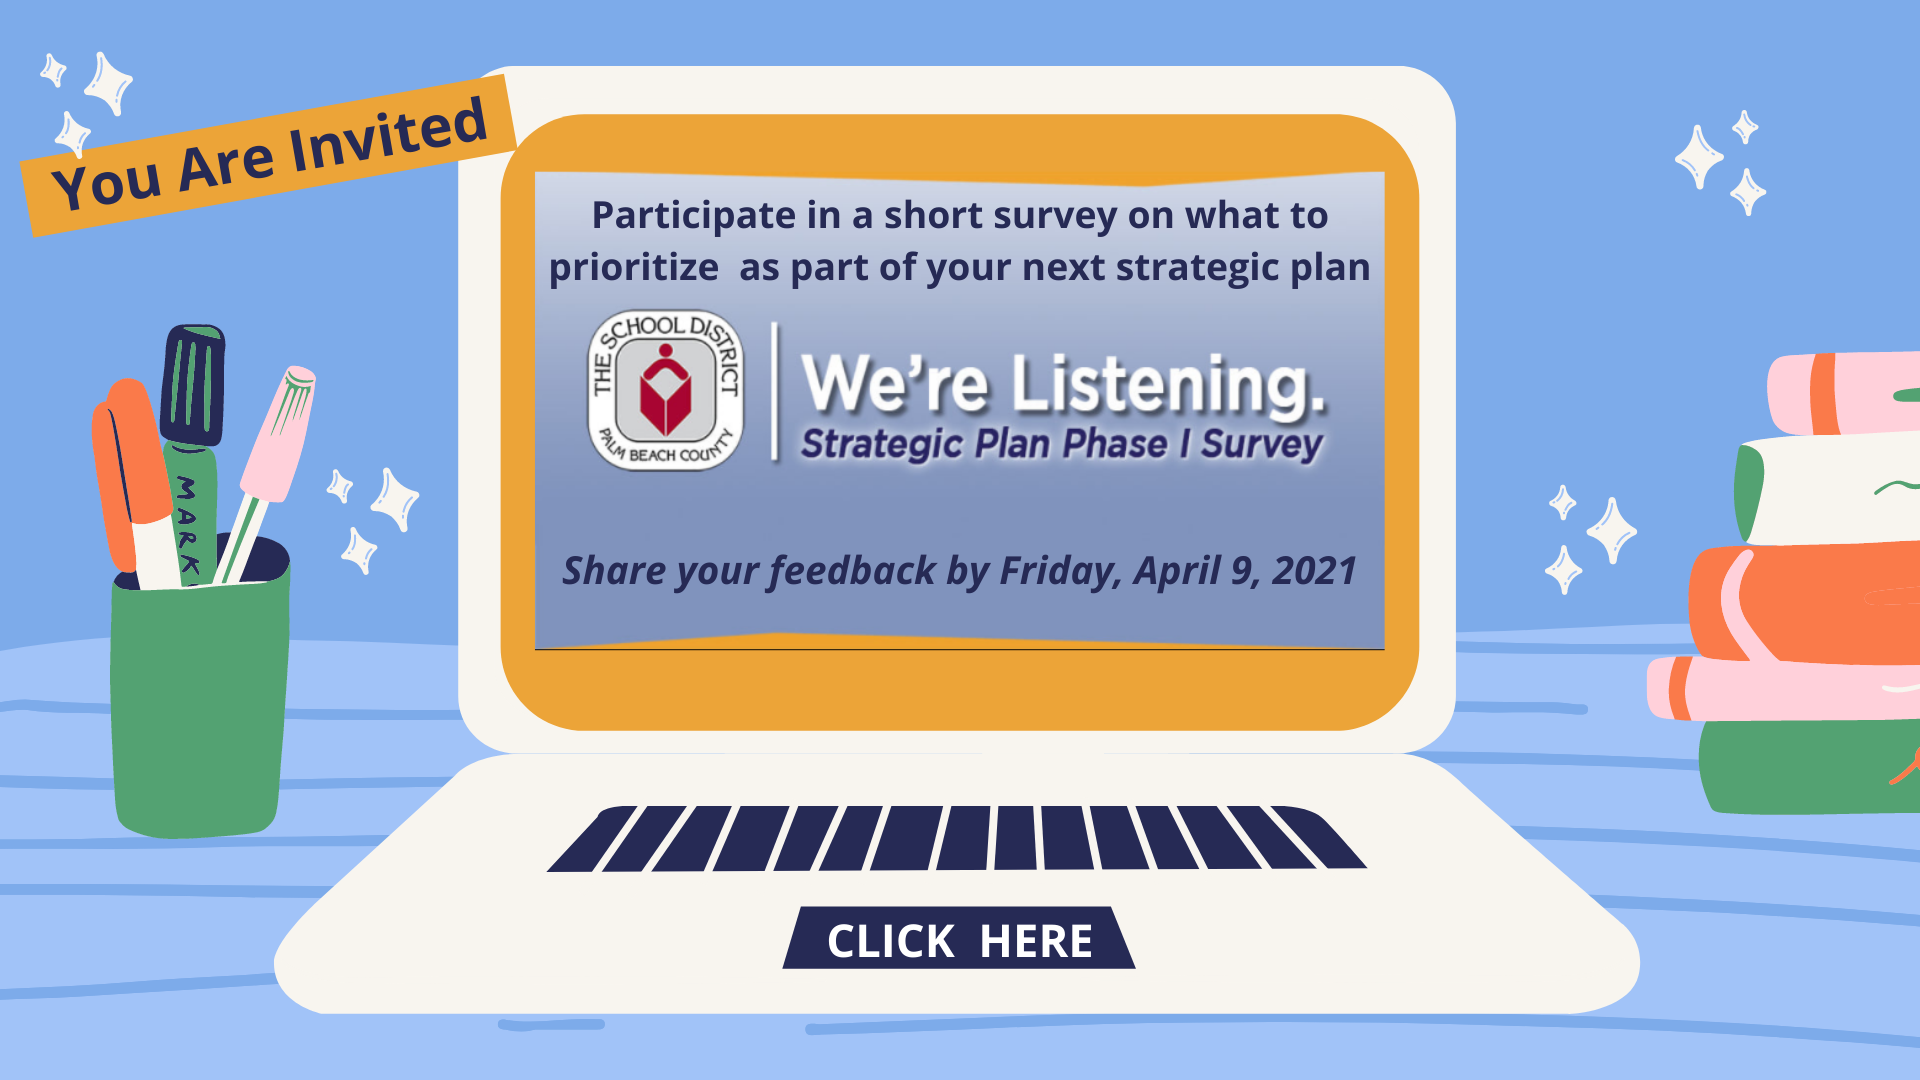 laptop with invite to participate in School District strategic plan survey